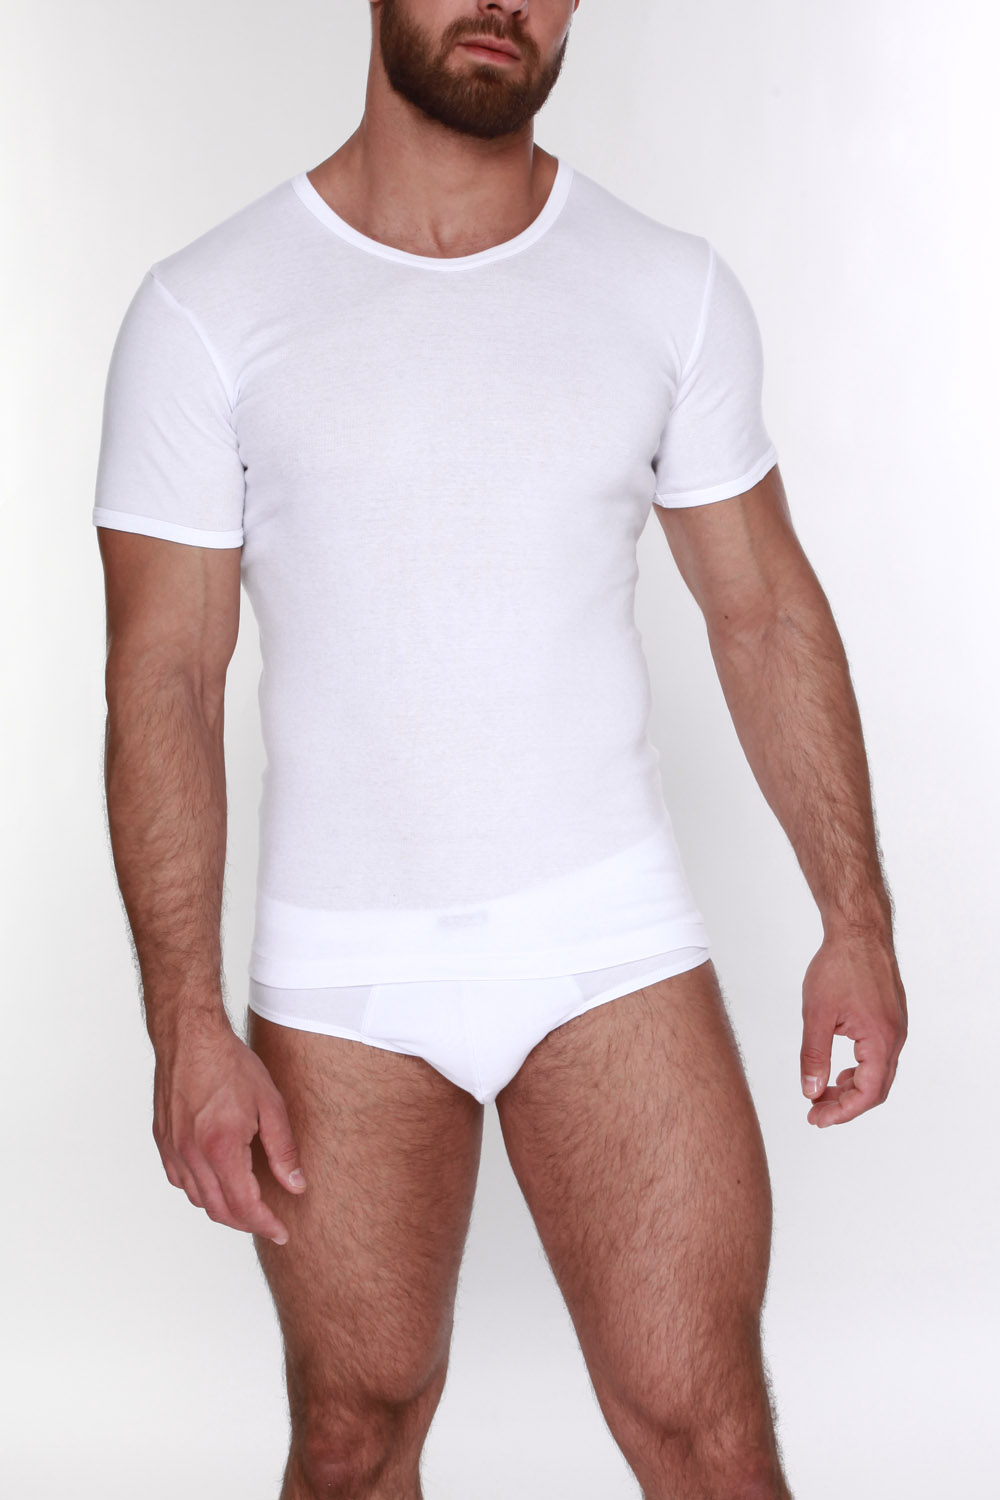 T-Shirts TORRO TMF503N White Cotton solid color men underwear TmallFS free shipping 6 pcs motorcycle front